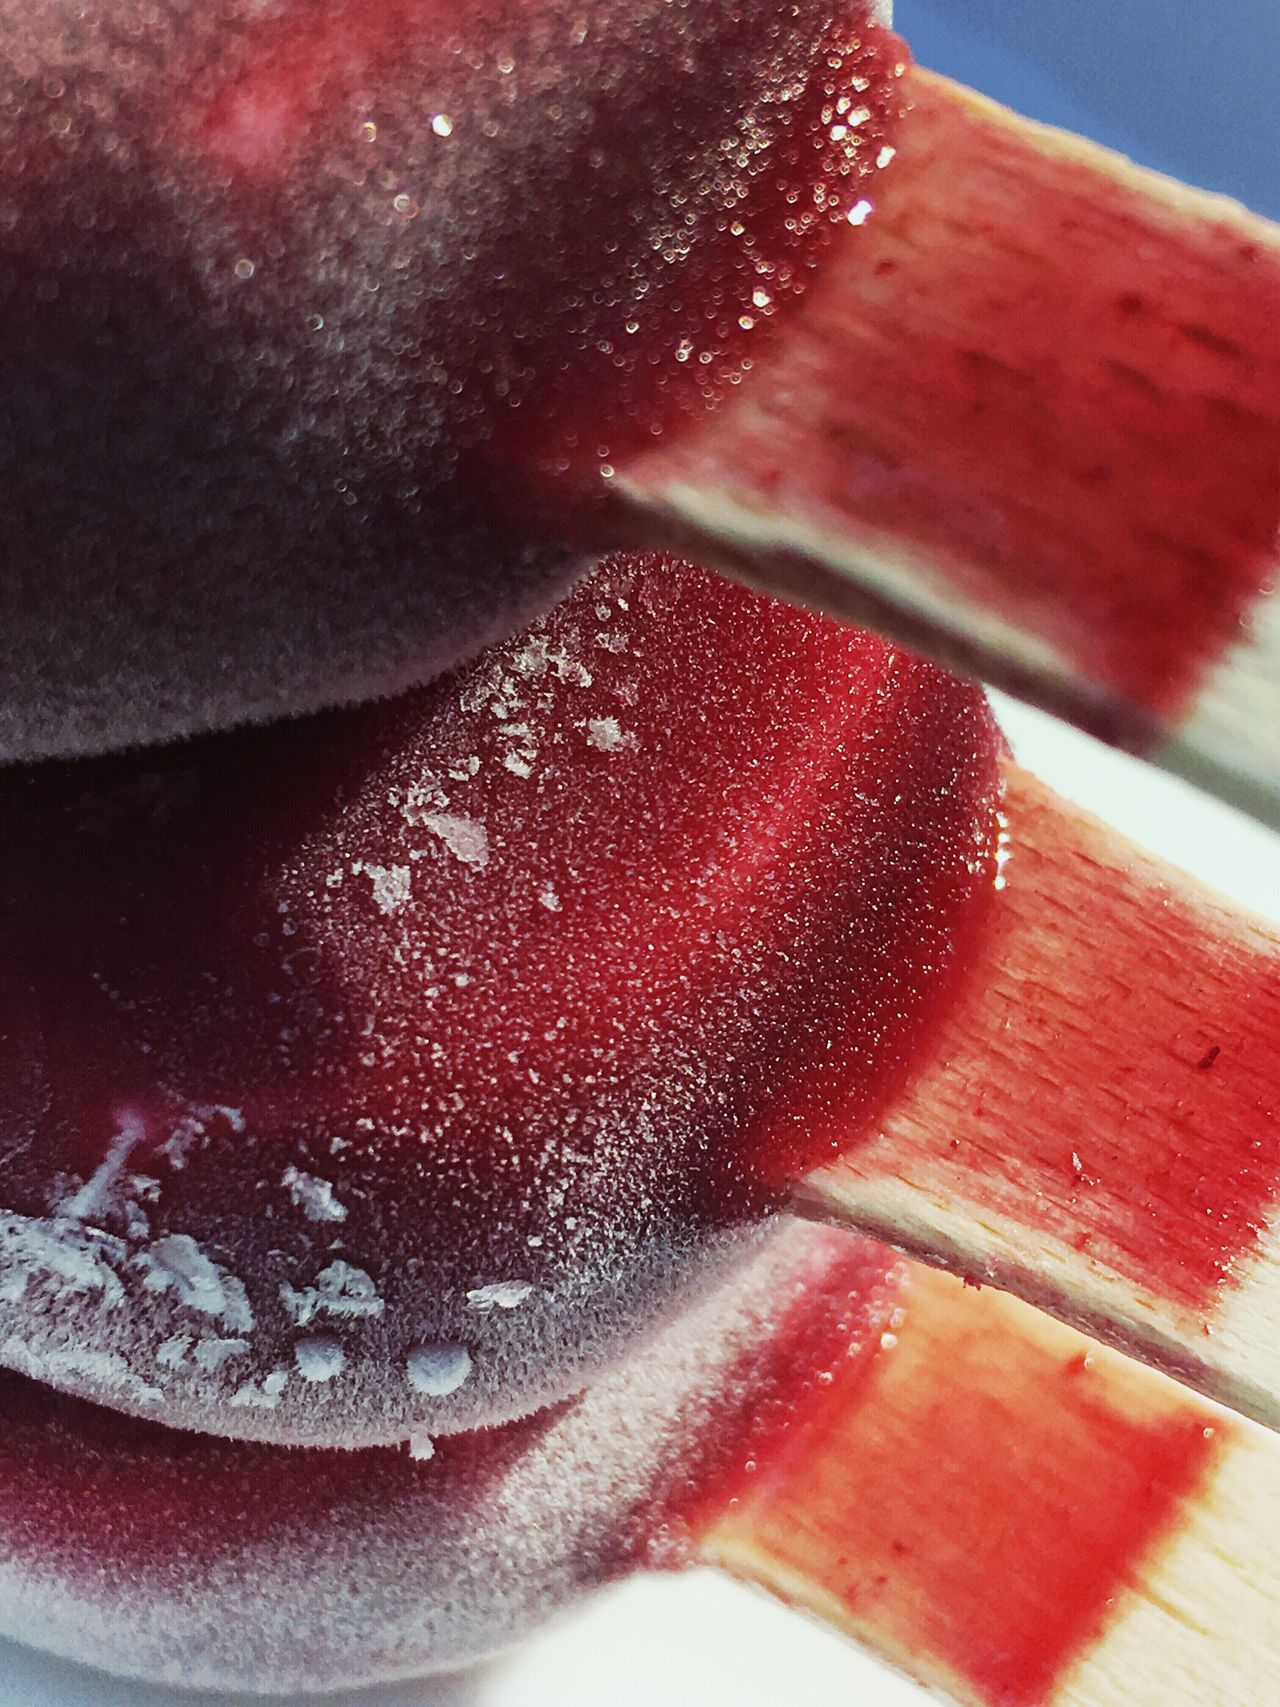 Full Frame Shot Of Popsicles Food And Drink Indoors  Close-up Red Food Sweet Food Frozen Food Flavored Ice Cold Temperature No People Dessert Freshness Refreshment Day Ready-to-eat Full Frame Vertical Photography Color Image Red